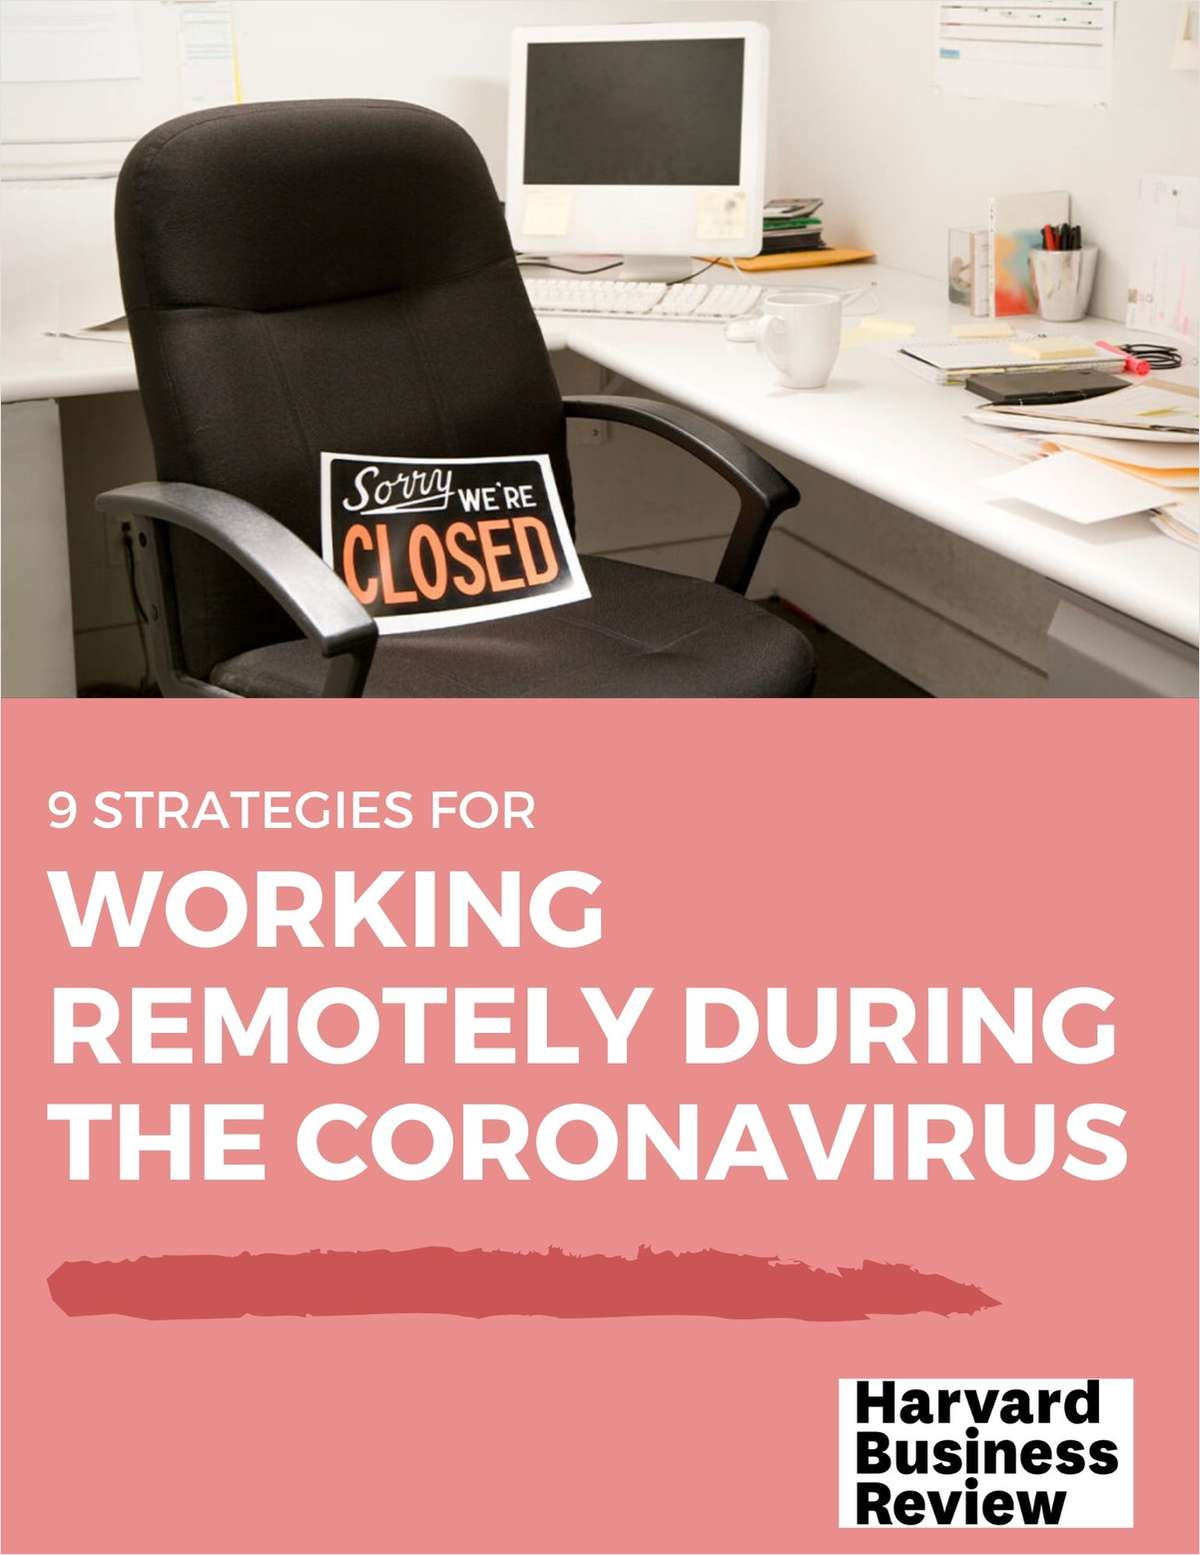 Strategies for Working Remotely During the Coronavirus